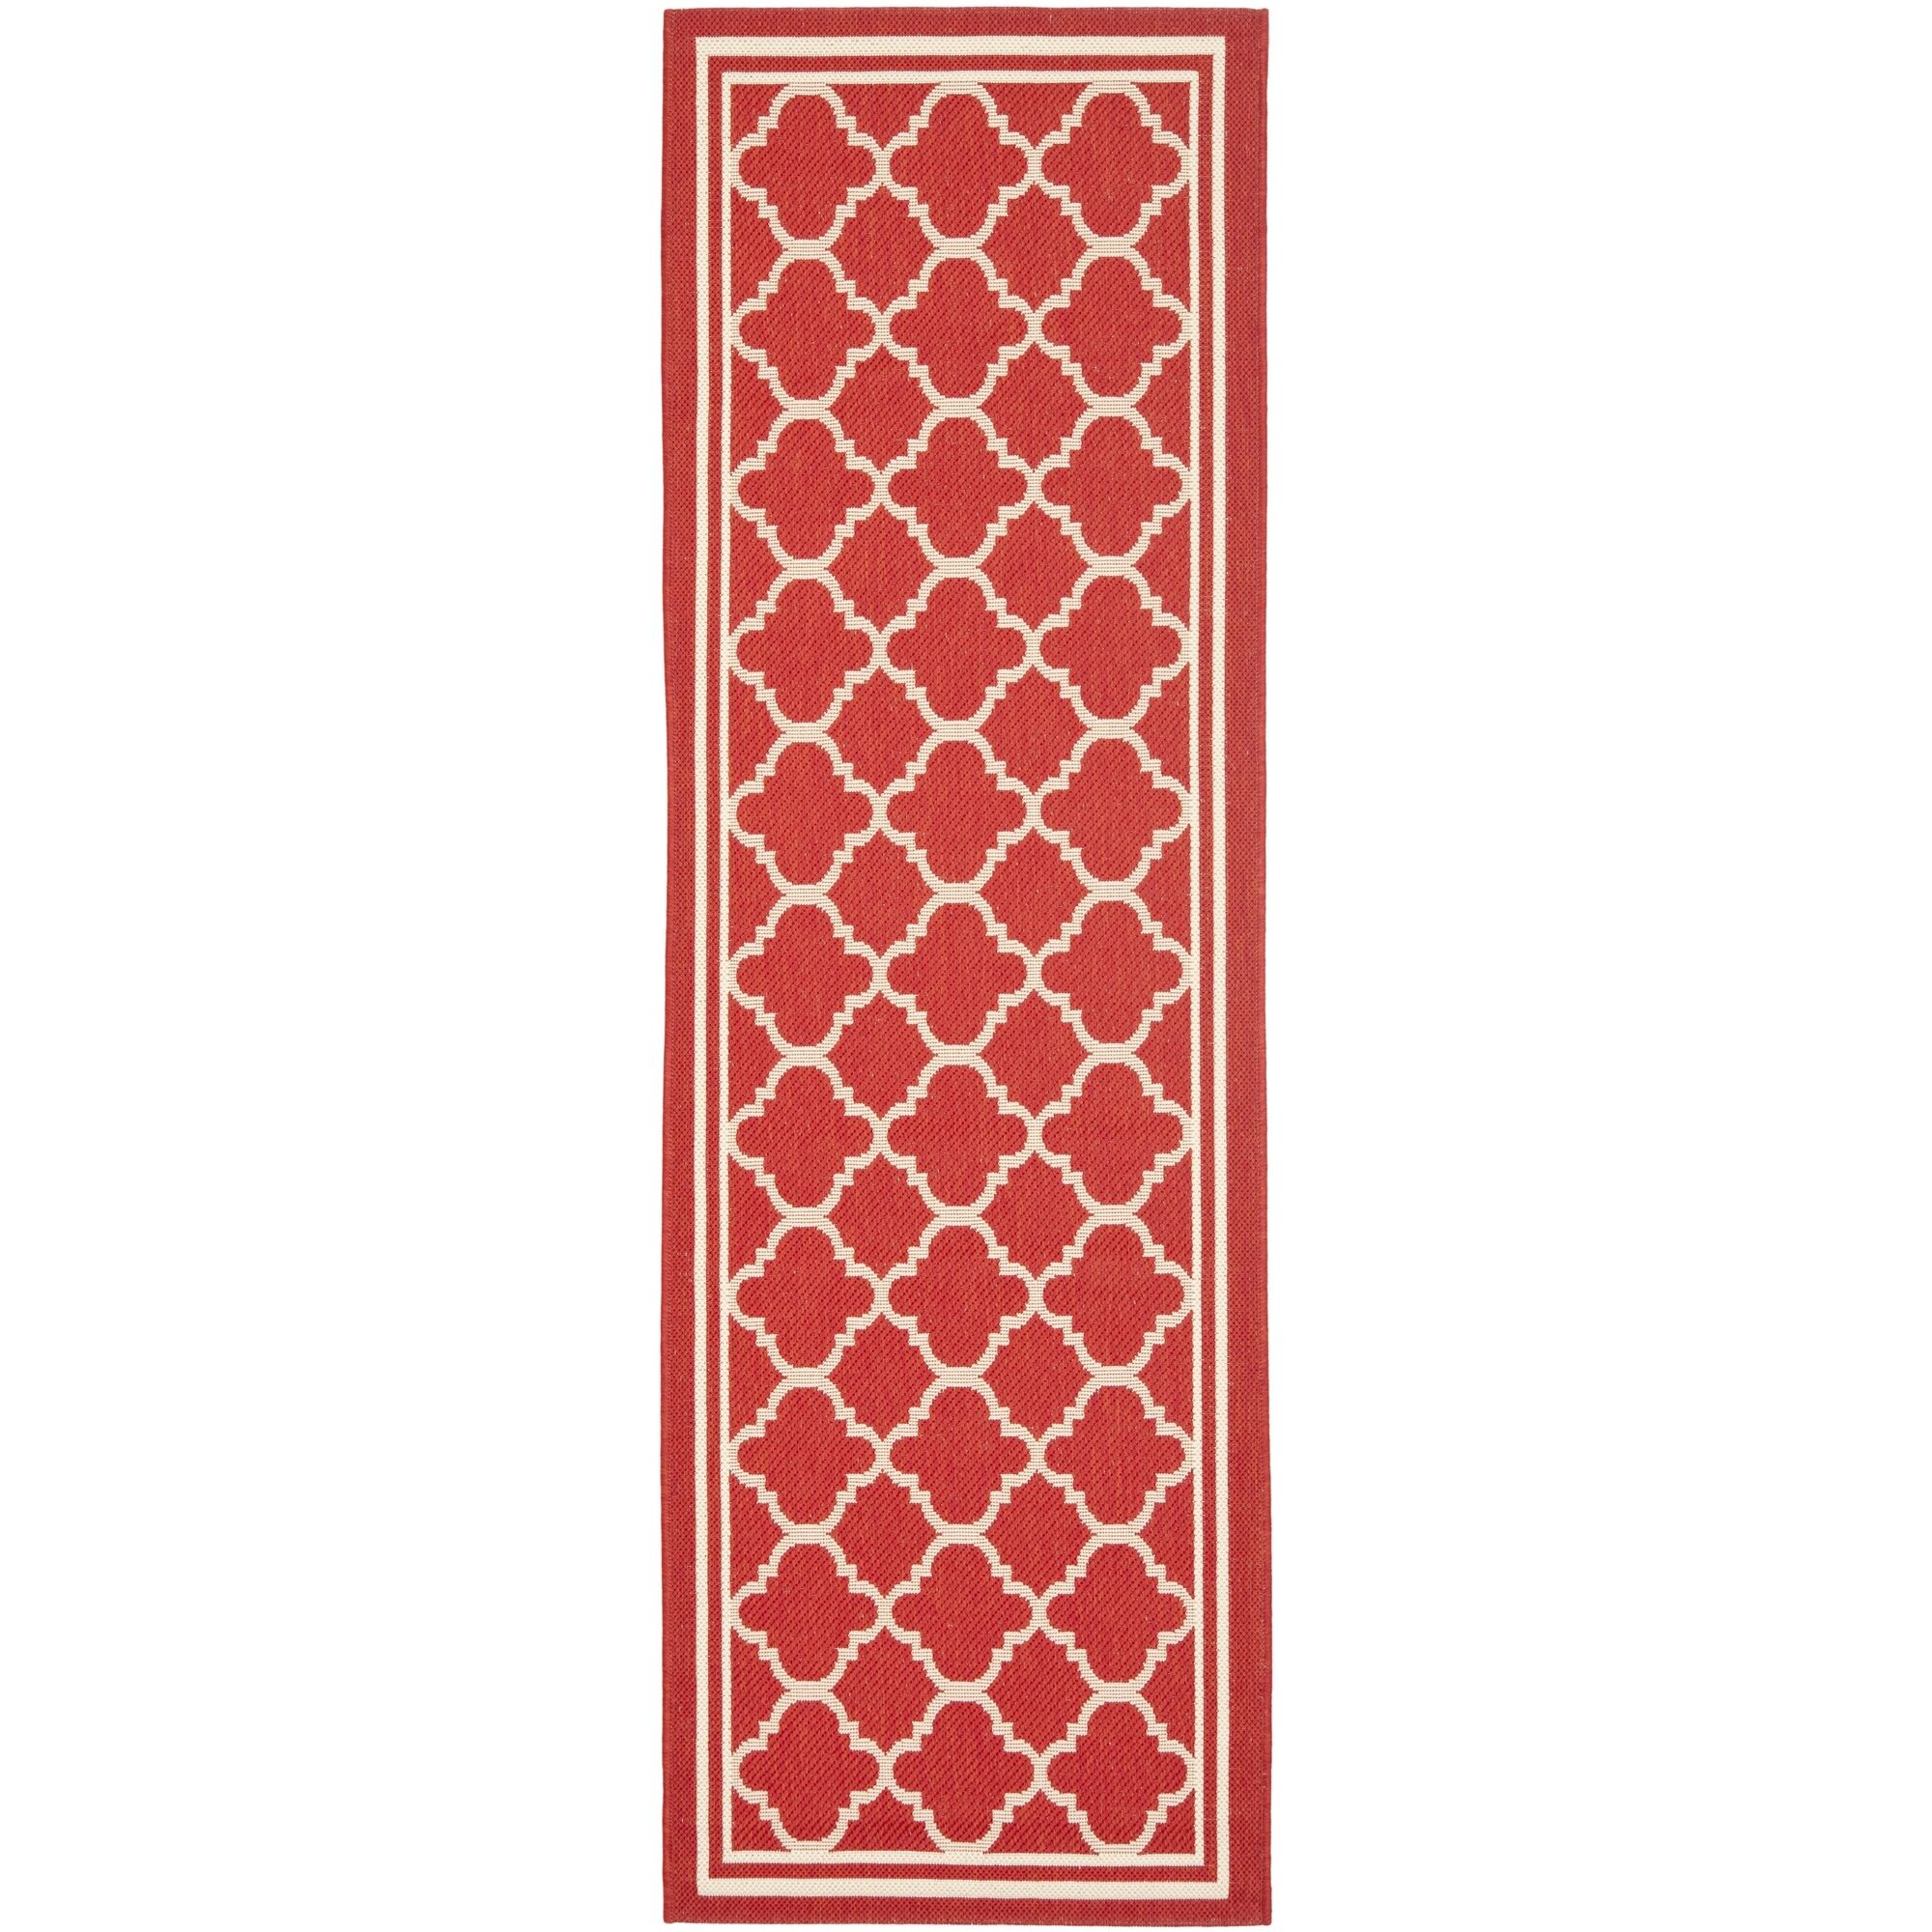 Short Red Indoor/Outdoor Power Loomed Area Rug Rug Size: Runner 2'4